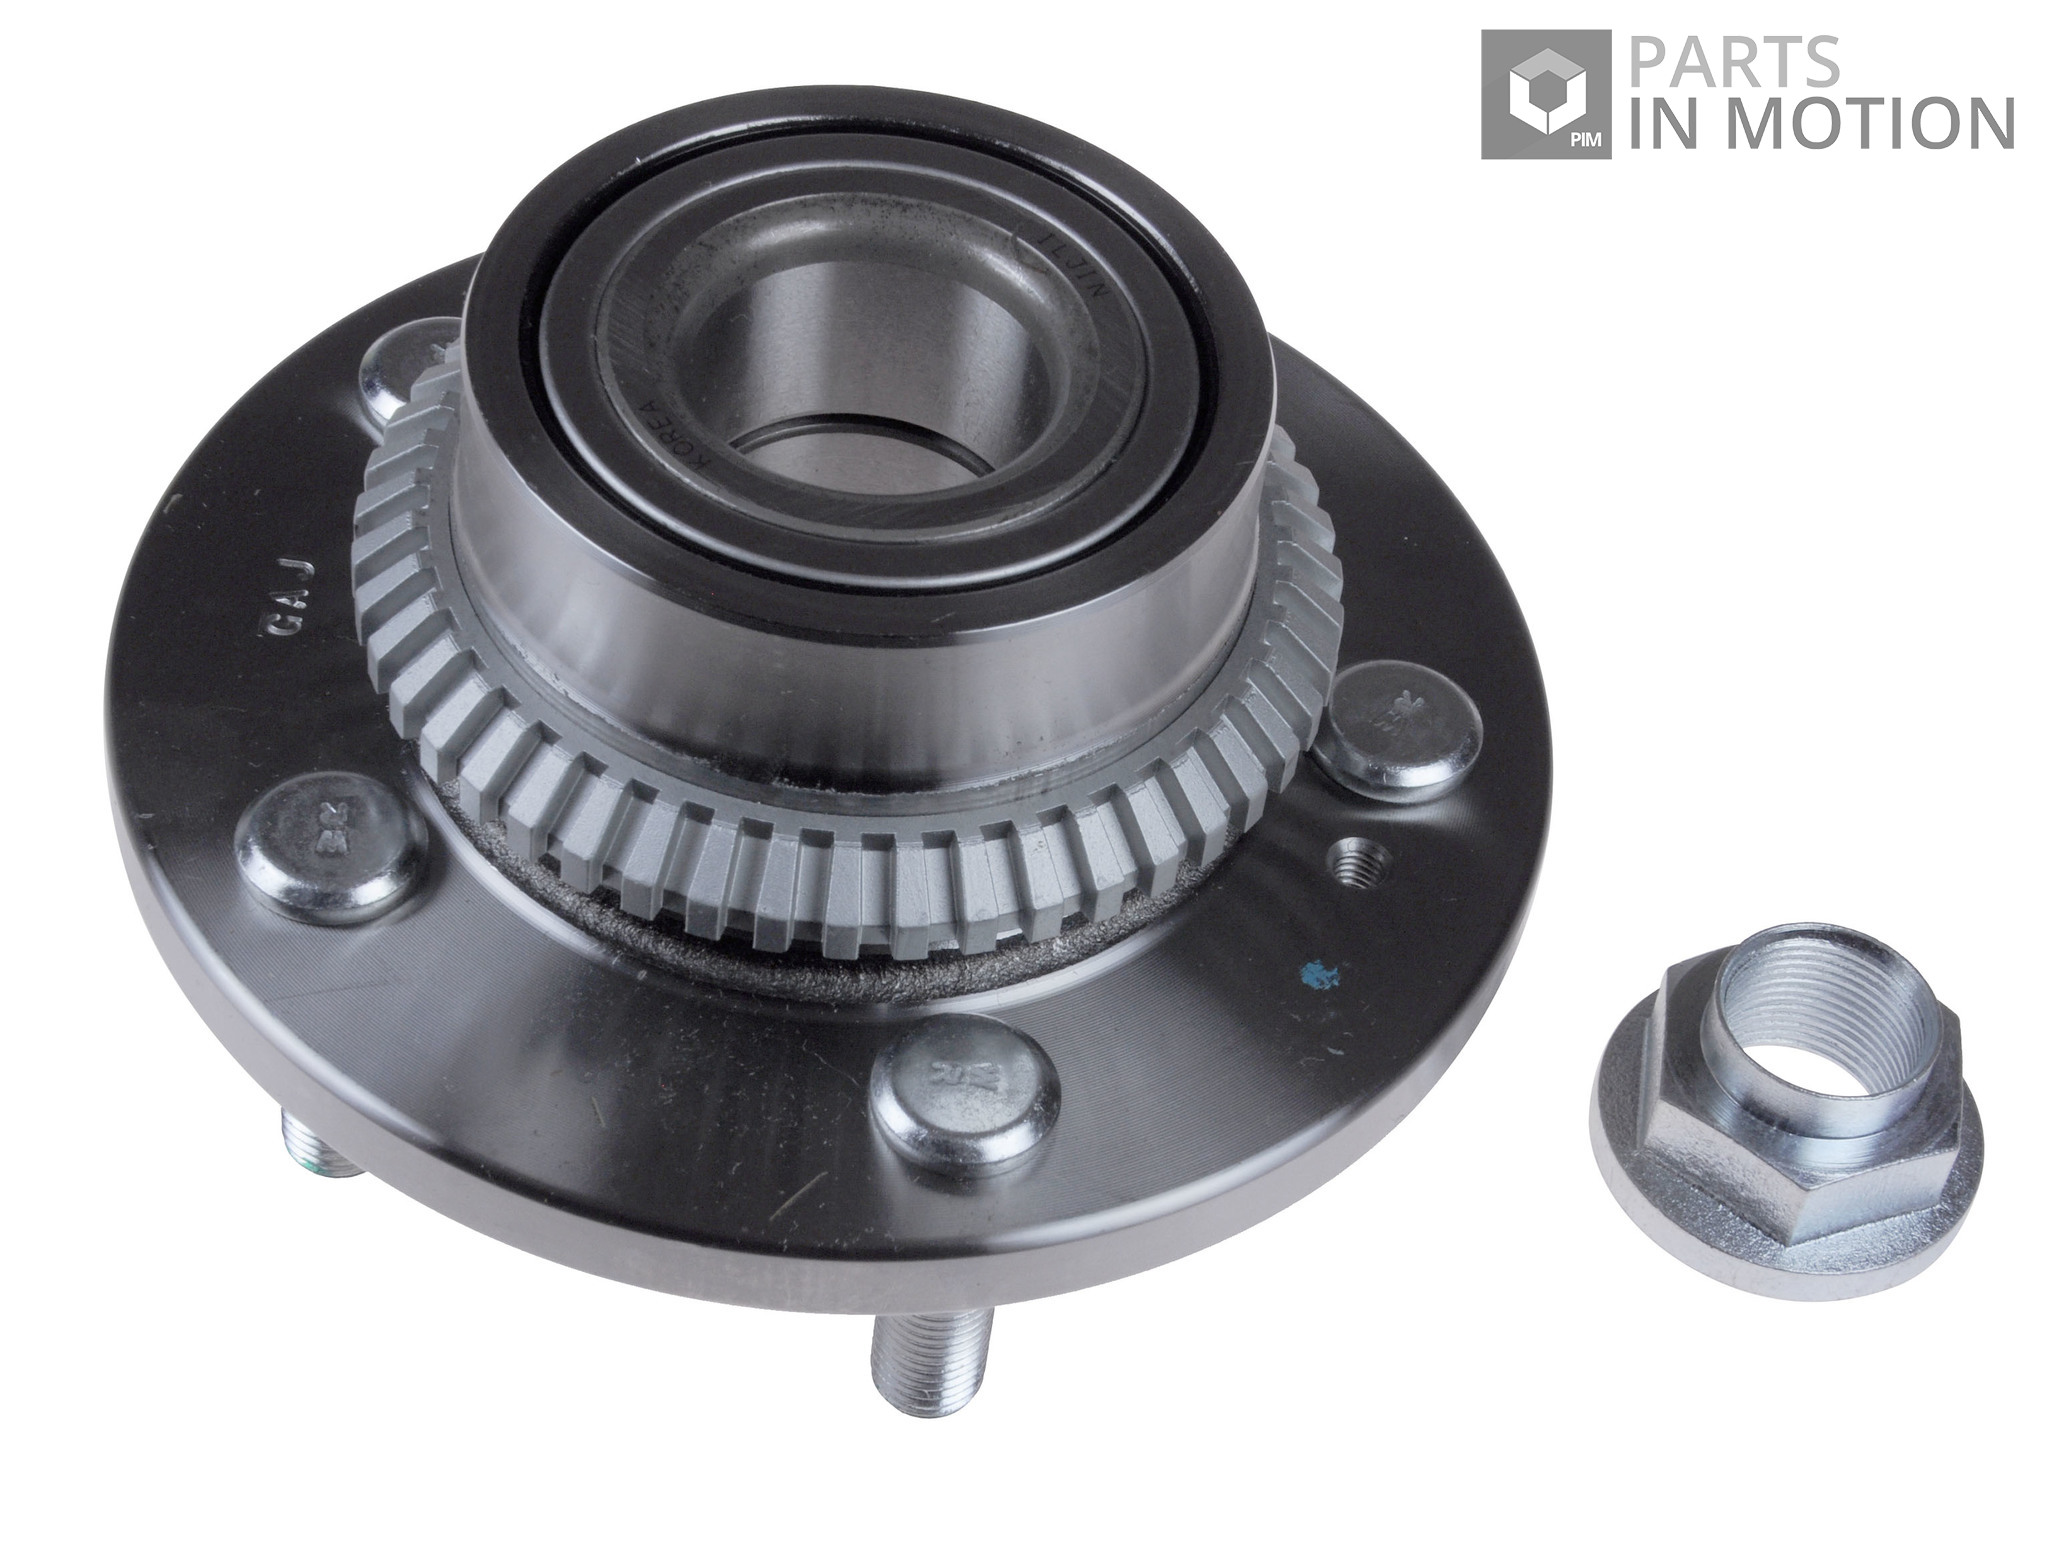 Wheel Bearing Kit fits HYUNDAI TRAJET FO Front 2.0 2.0D 00 to 08 With ABS B/&B